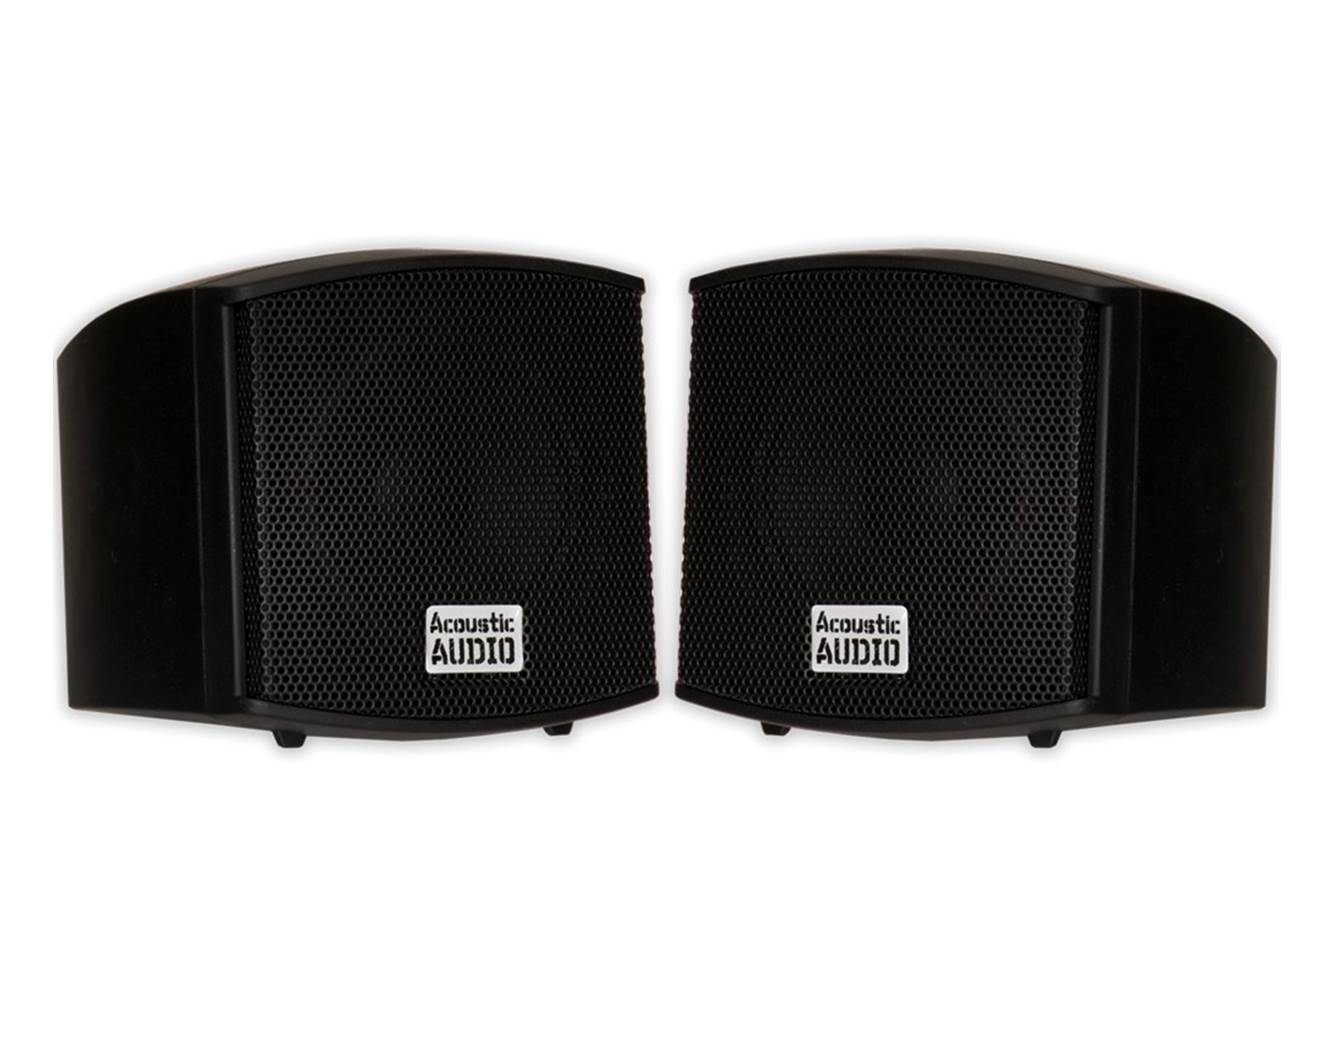 Acoustic Audio AA321B Stereo Speakers